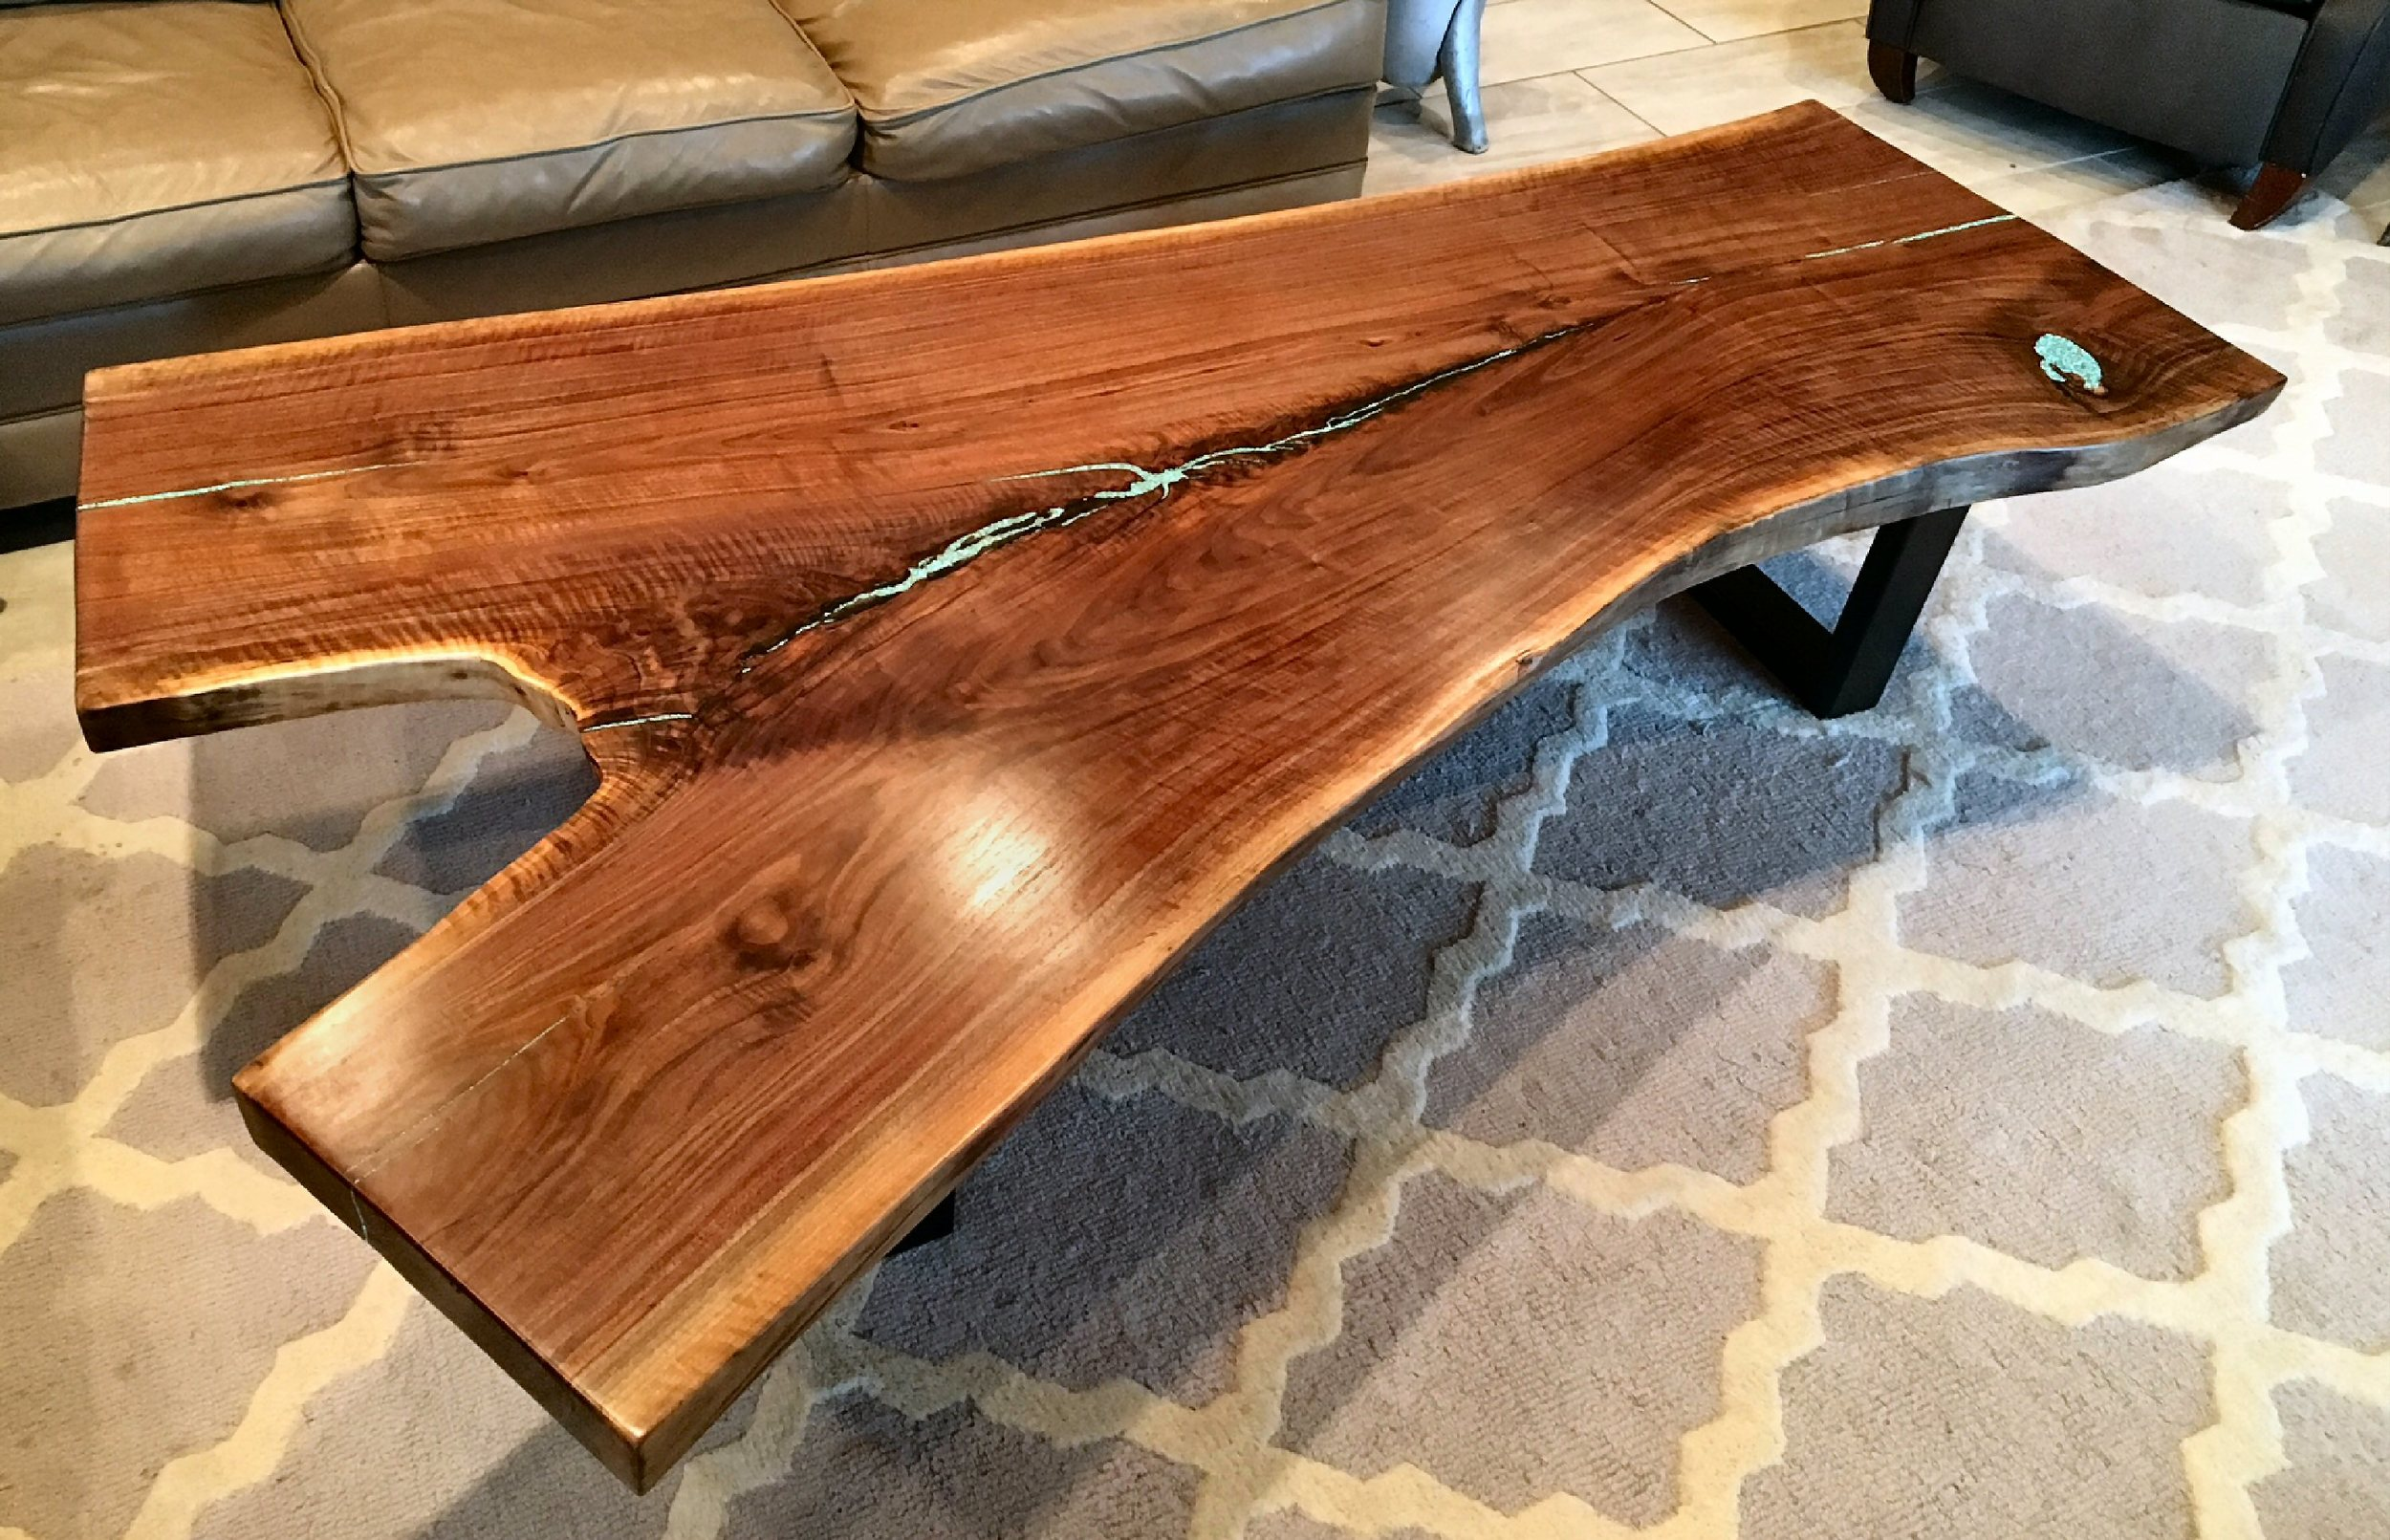 """Large Black Walnut Live Edge Coffee Table 78"""" L X 24"""" - 53"""" W X 15"""" T. This 3"""" thick slab is supported by 2"""" X 3"""" rectangular steel legs, and the table is has turquoise inlays...$3,500.00  SOLD"""